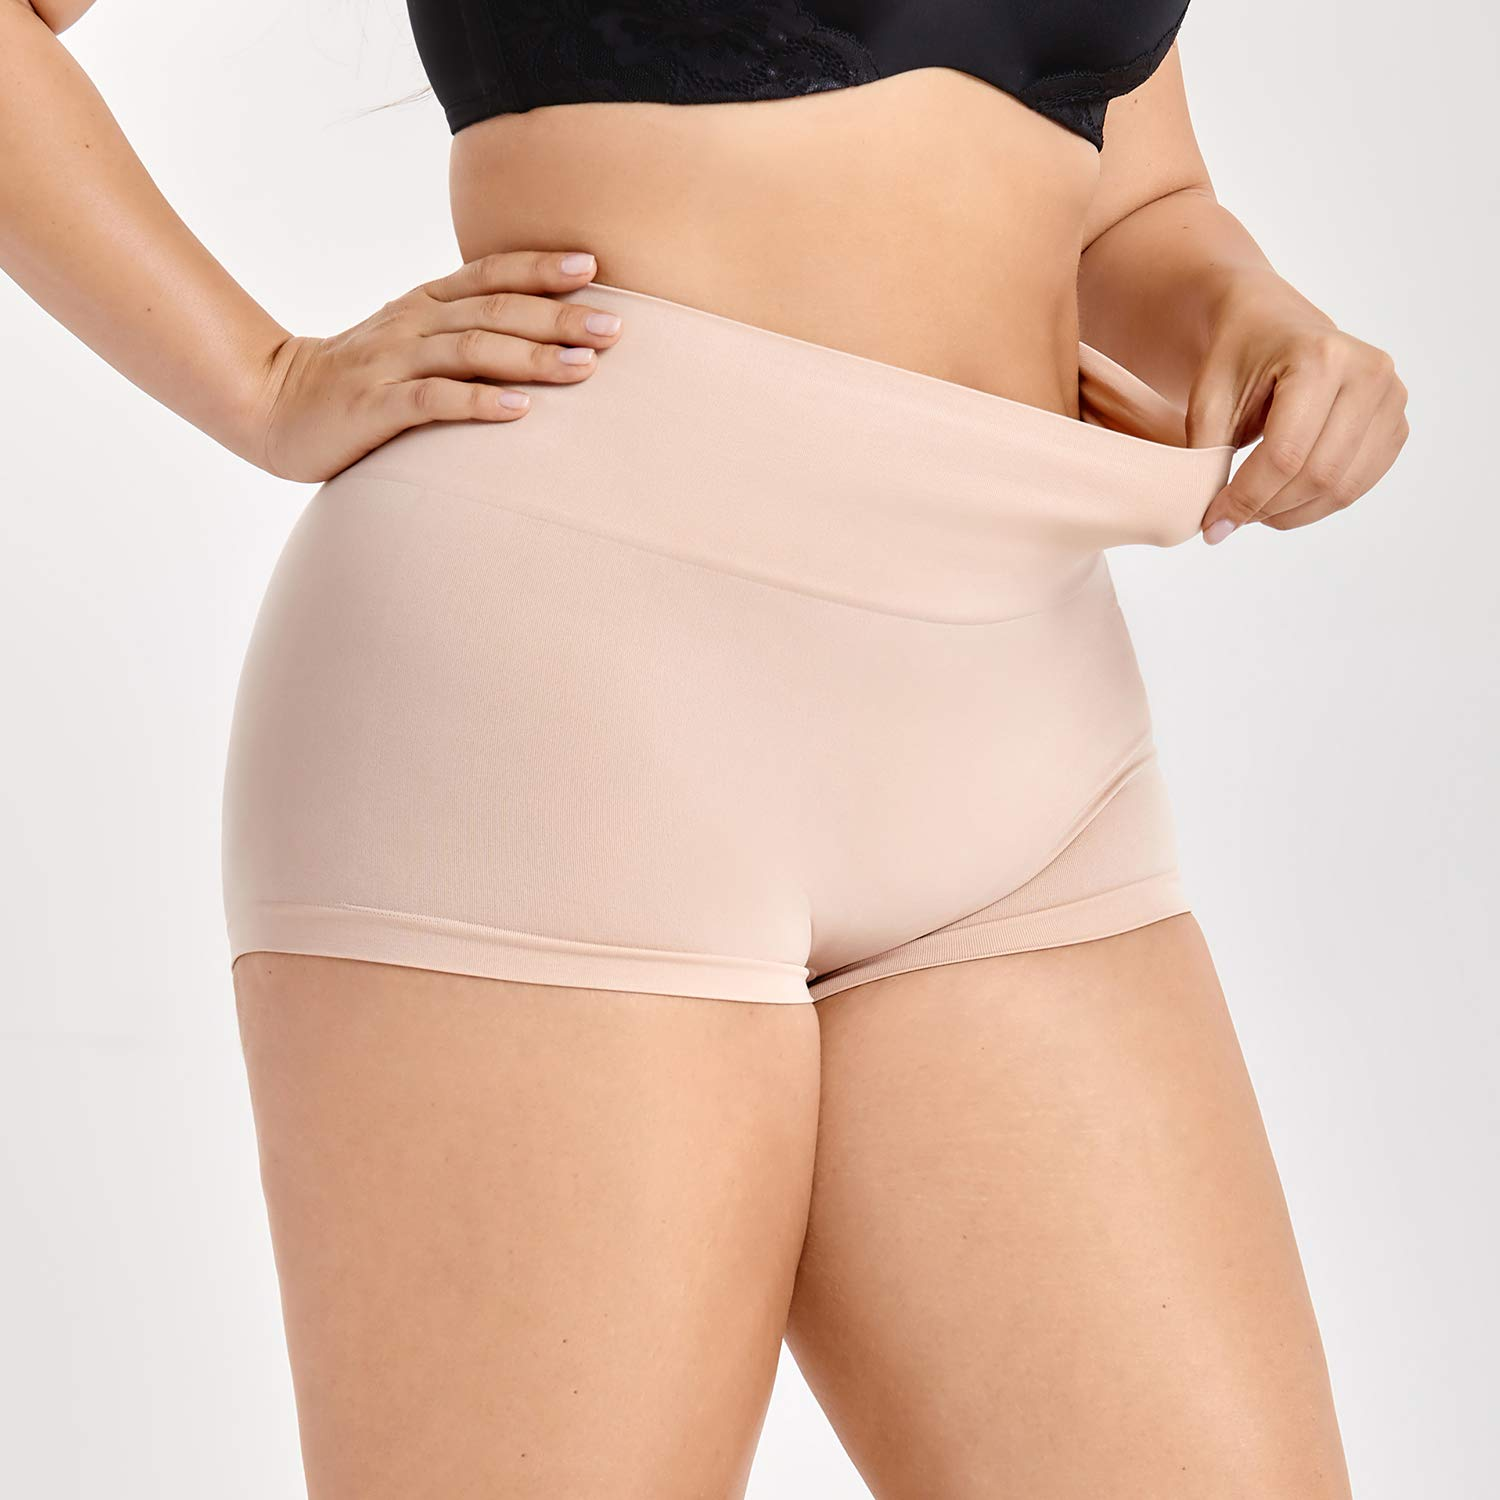 2038cf4330cd DELIMIRA Women's Plus Size Tummy Control Panties Thigh Slimmer Shapewear  Shorts at Amazon Women's Clothing store: